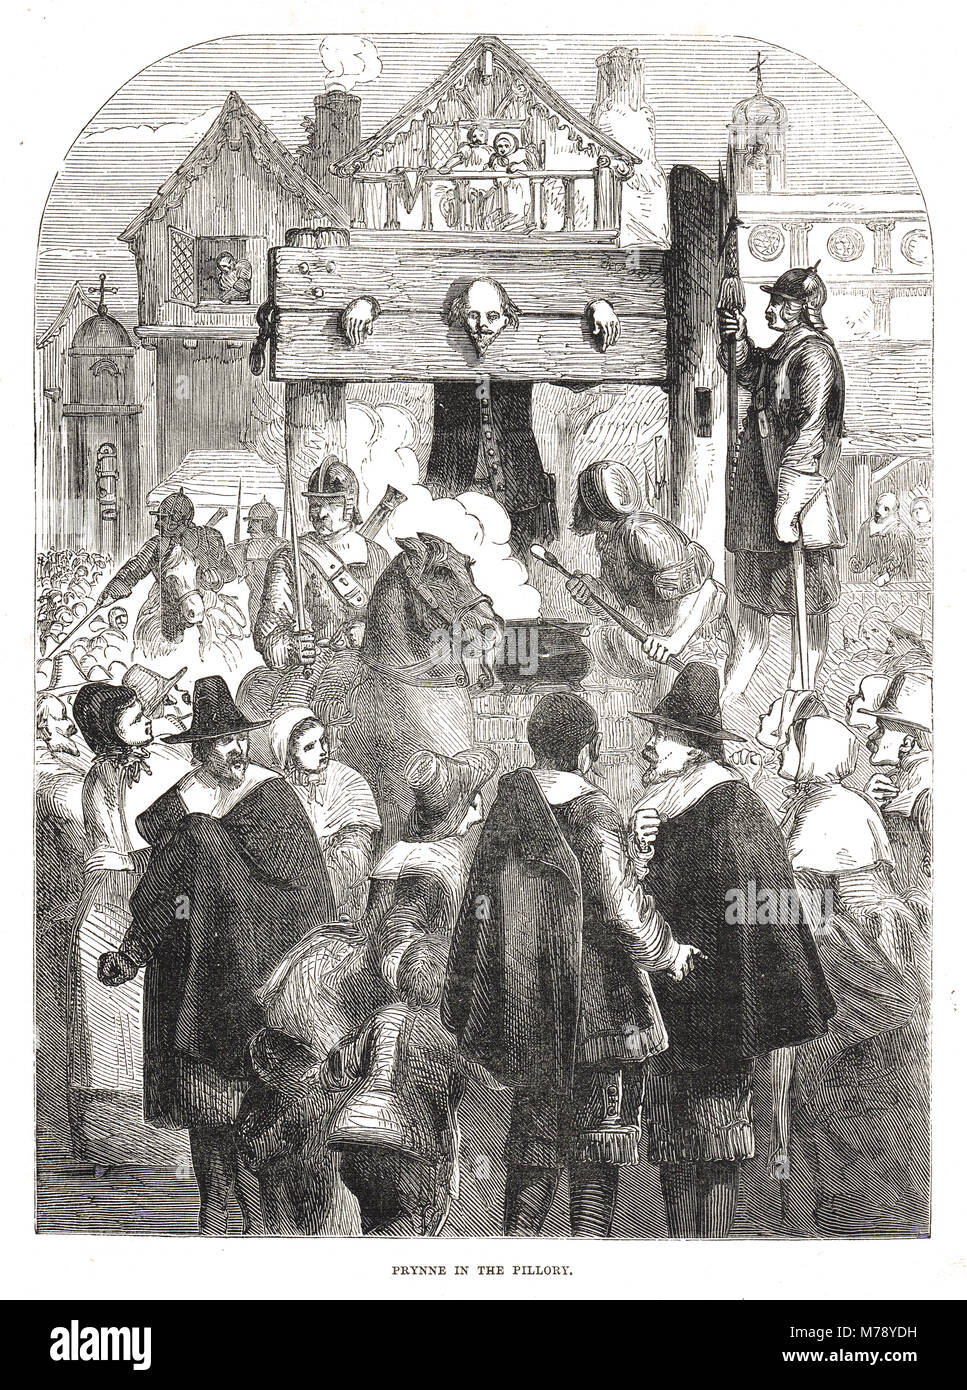 William Prynne, 1600-1669, in the pillory, 1634 - Stock Image